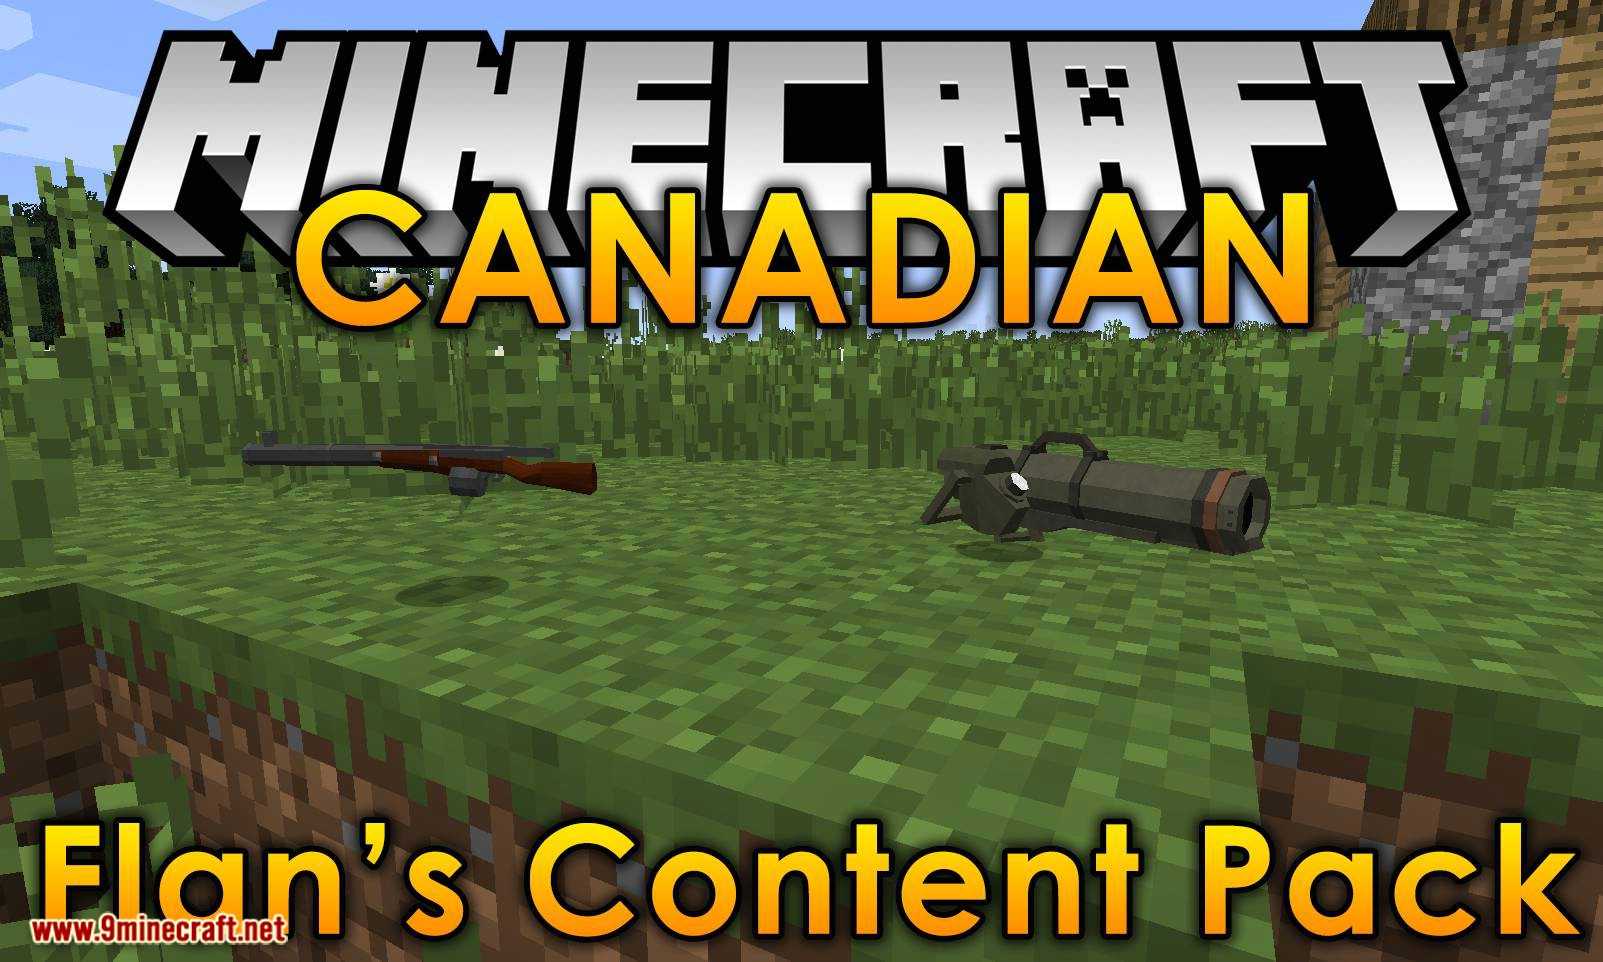 Flan_s Content Pack CANADIAN mod for minecraft logo